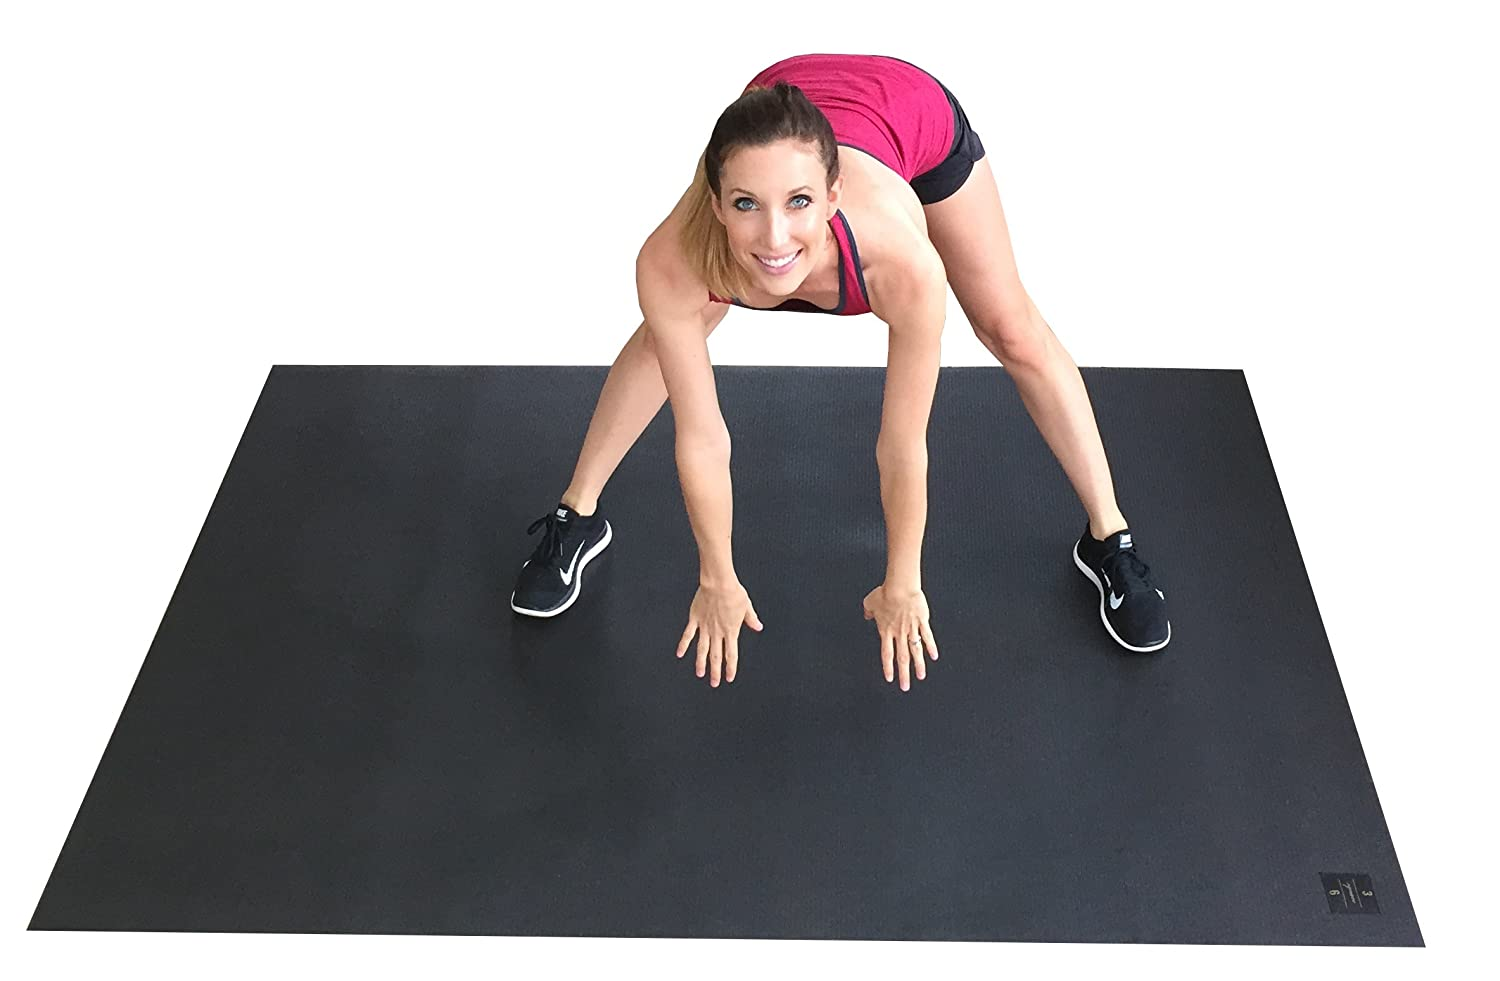 Large exercise Mat